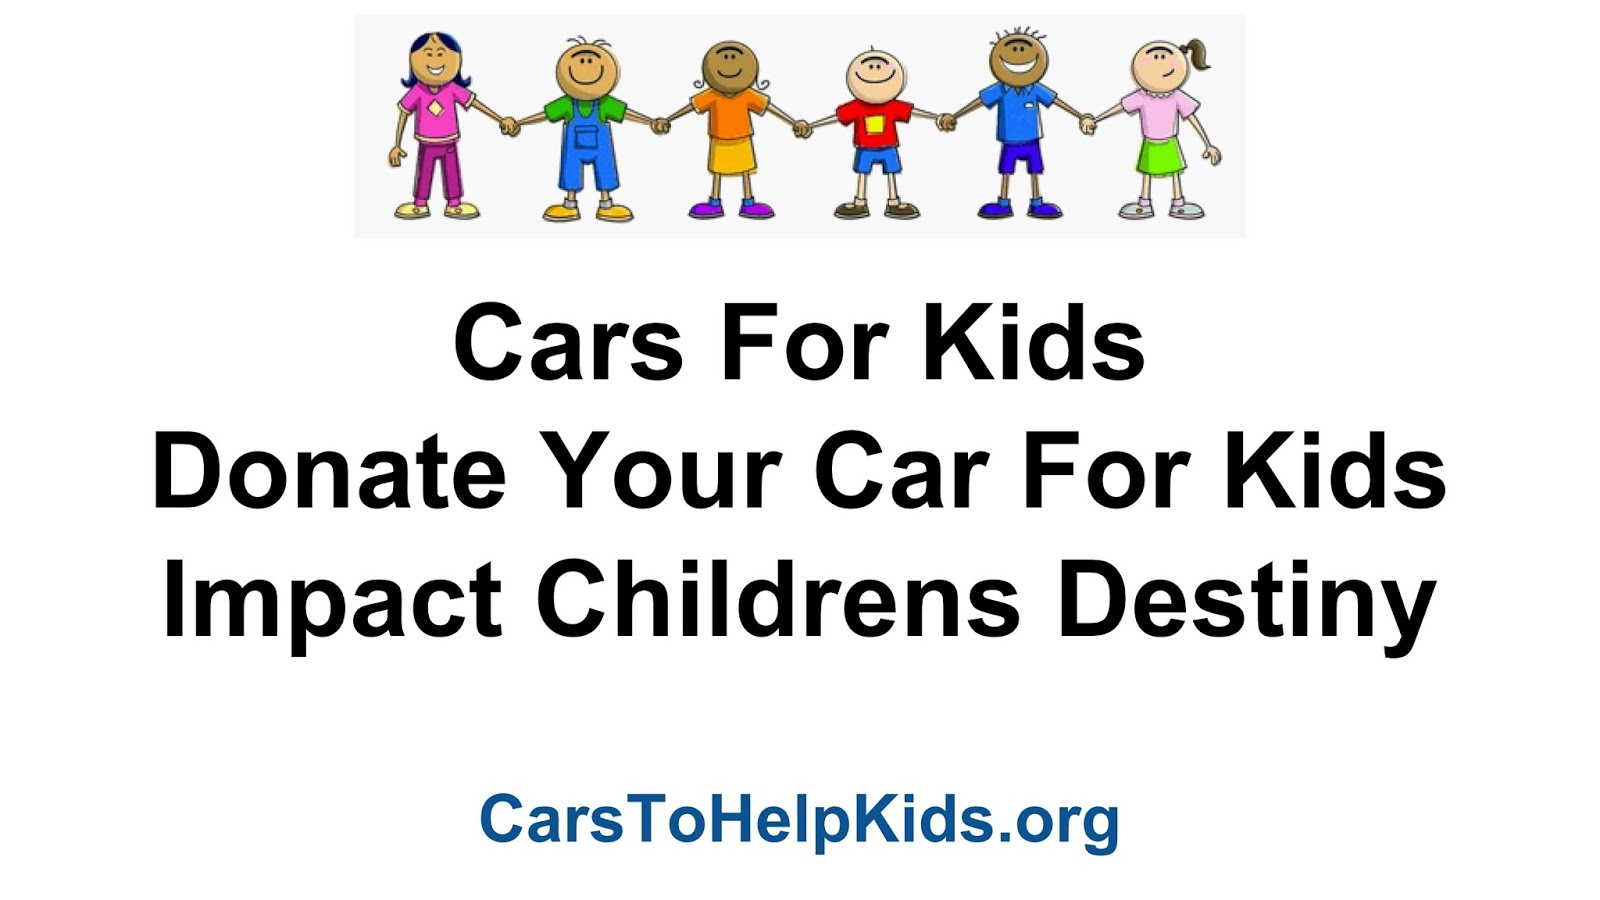 Kids and Teens: DONATE YOUR CAR FOR KIDS